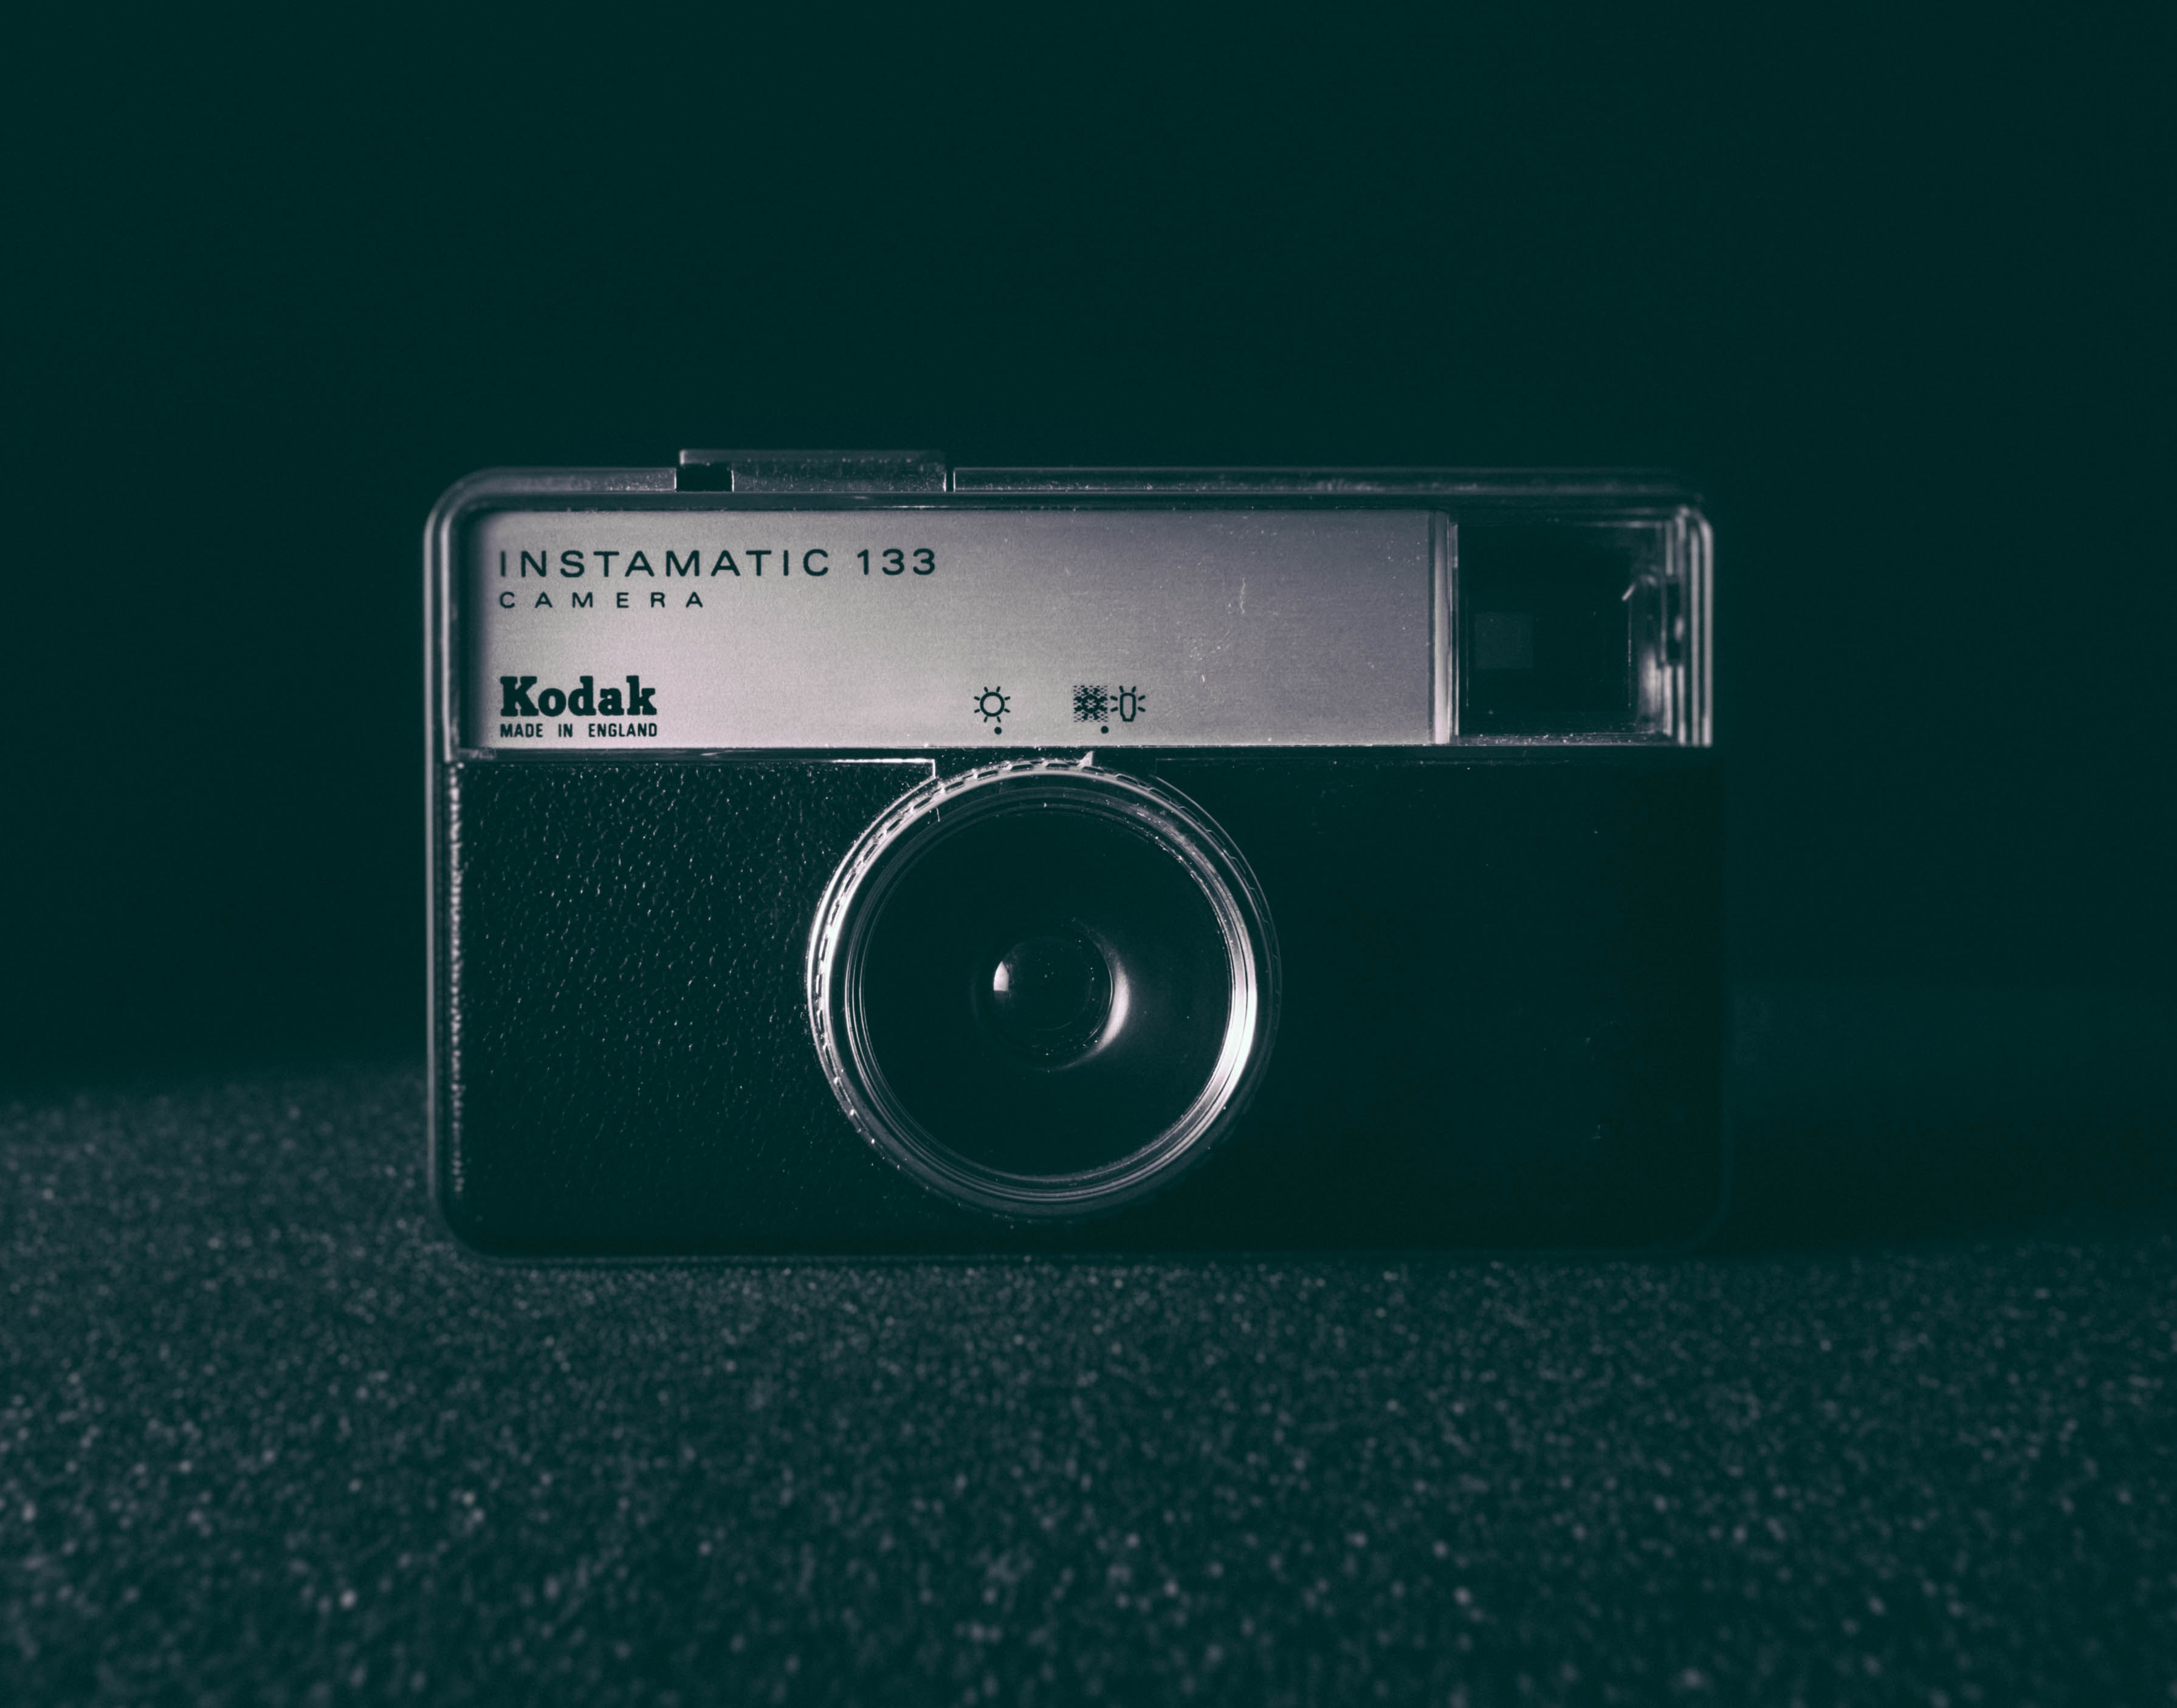 black and white camera on black surface